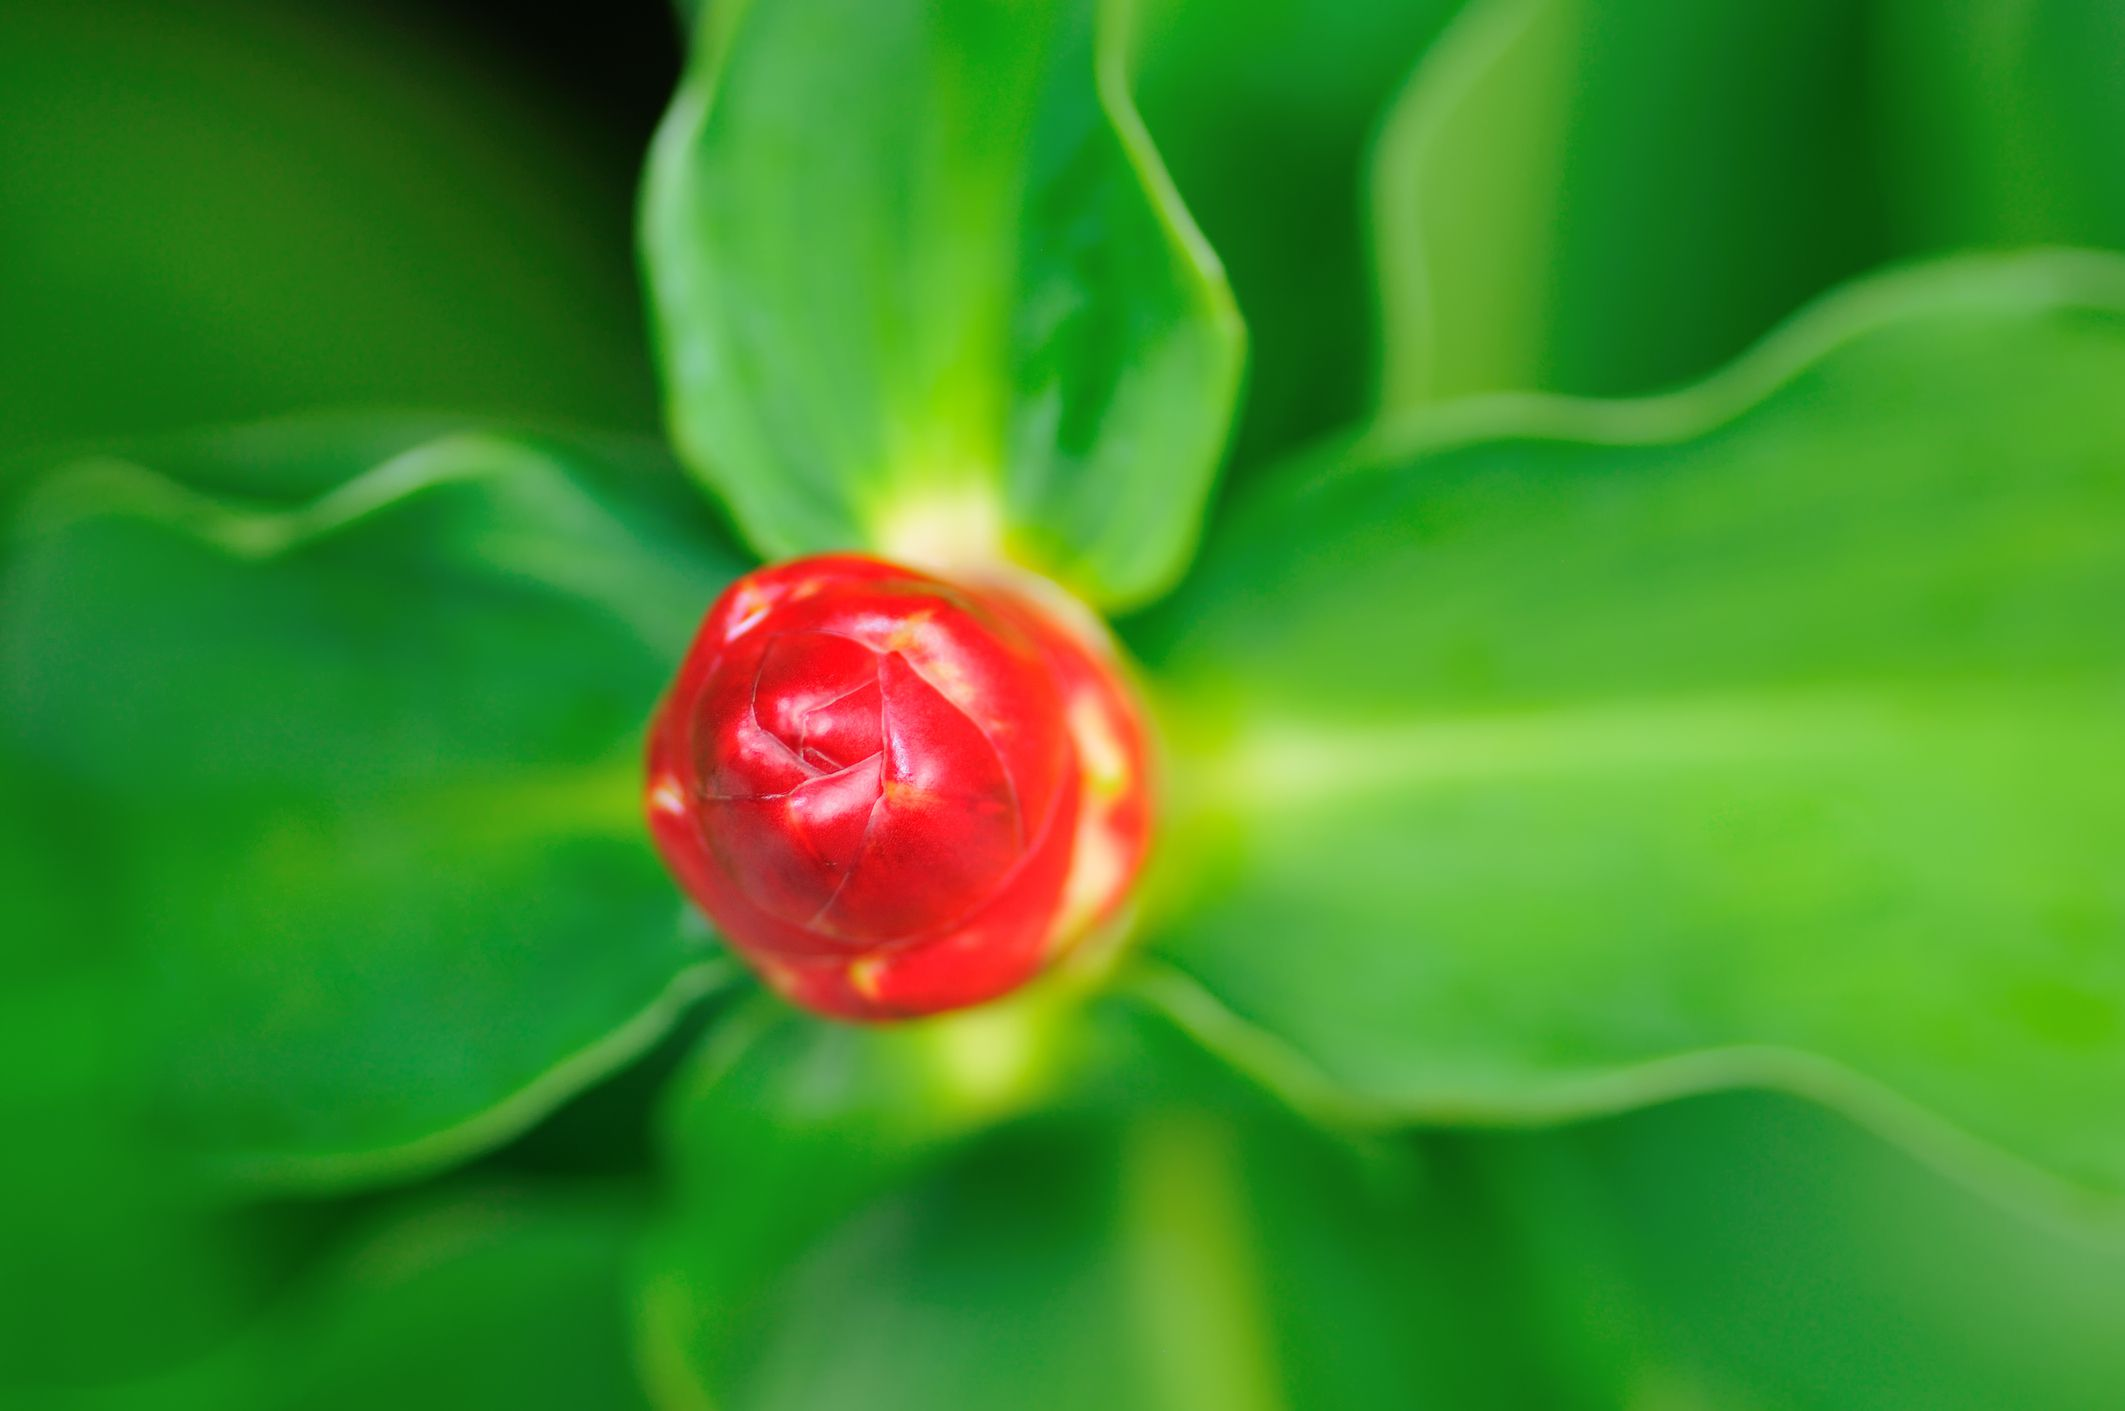 Close-up of a red button ginger